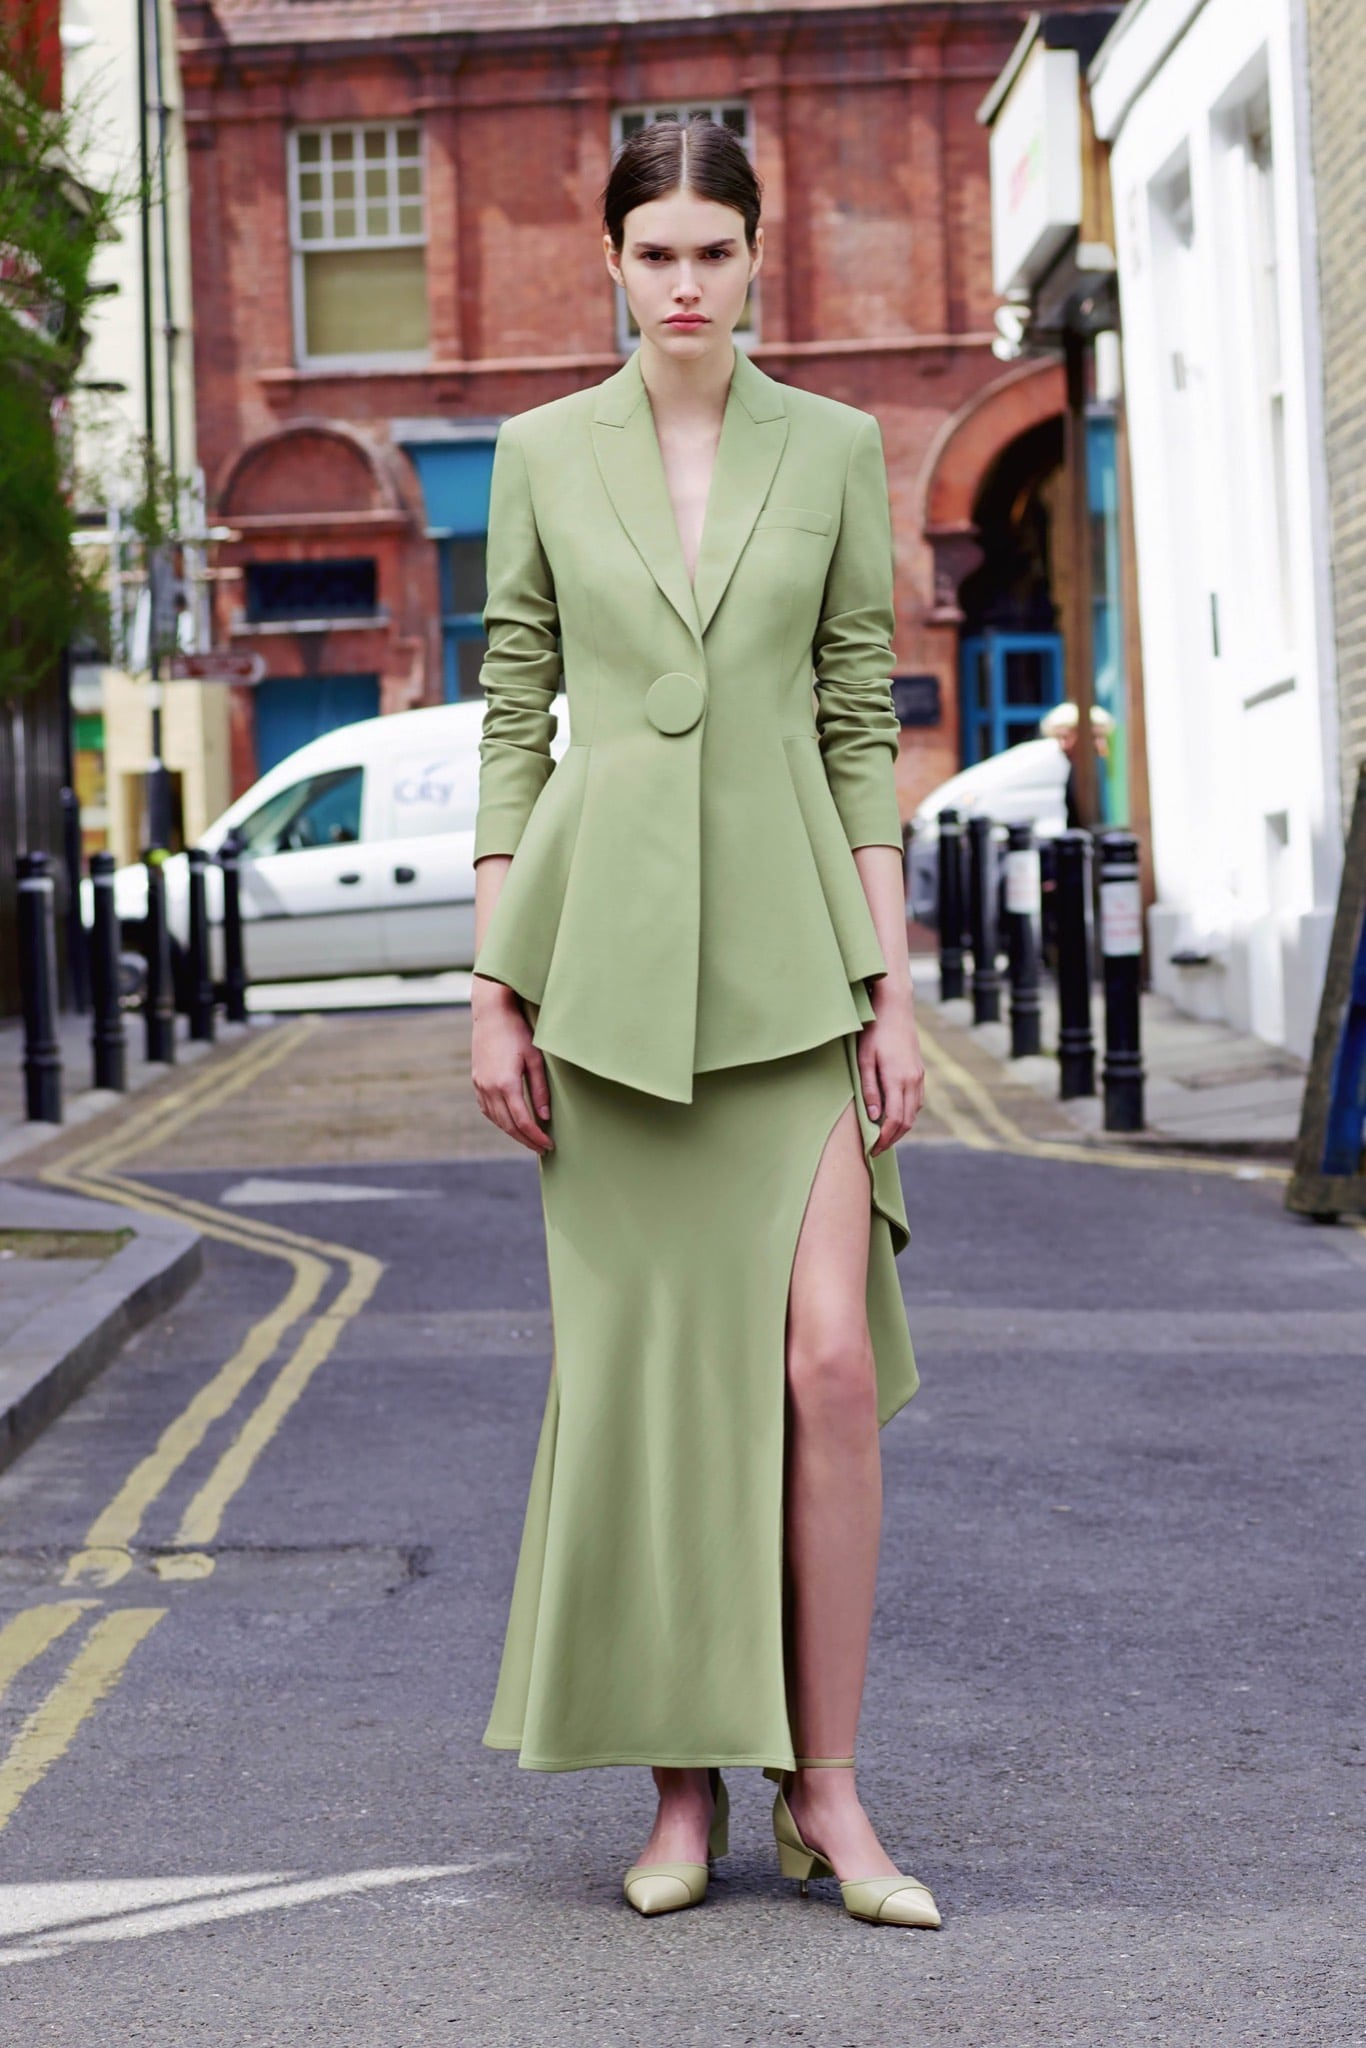 Givenchy Resort 2016 Collection Featuring Green Leopard